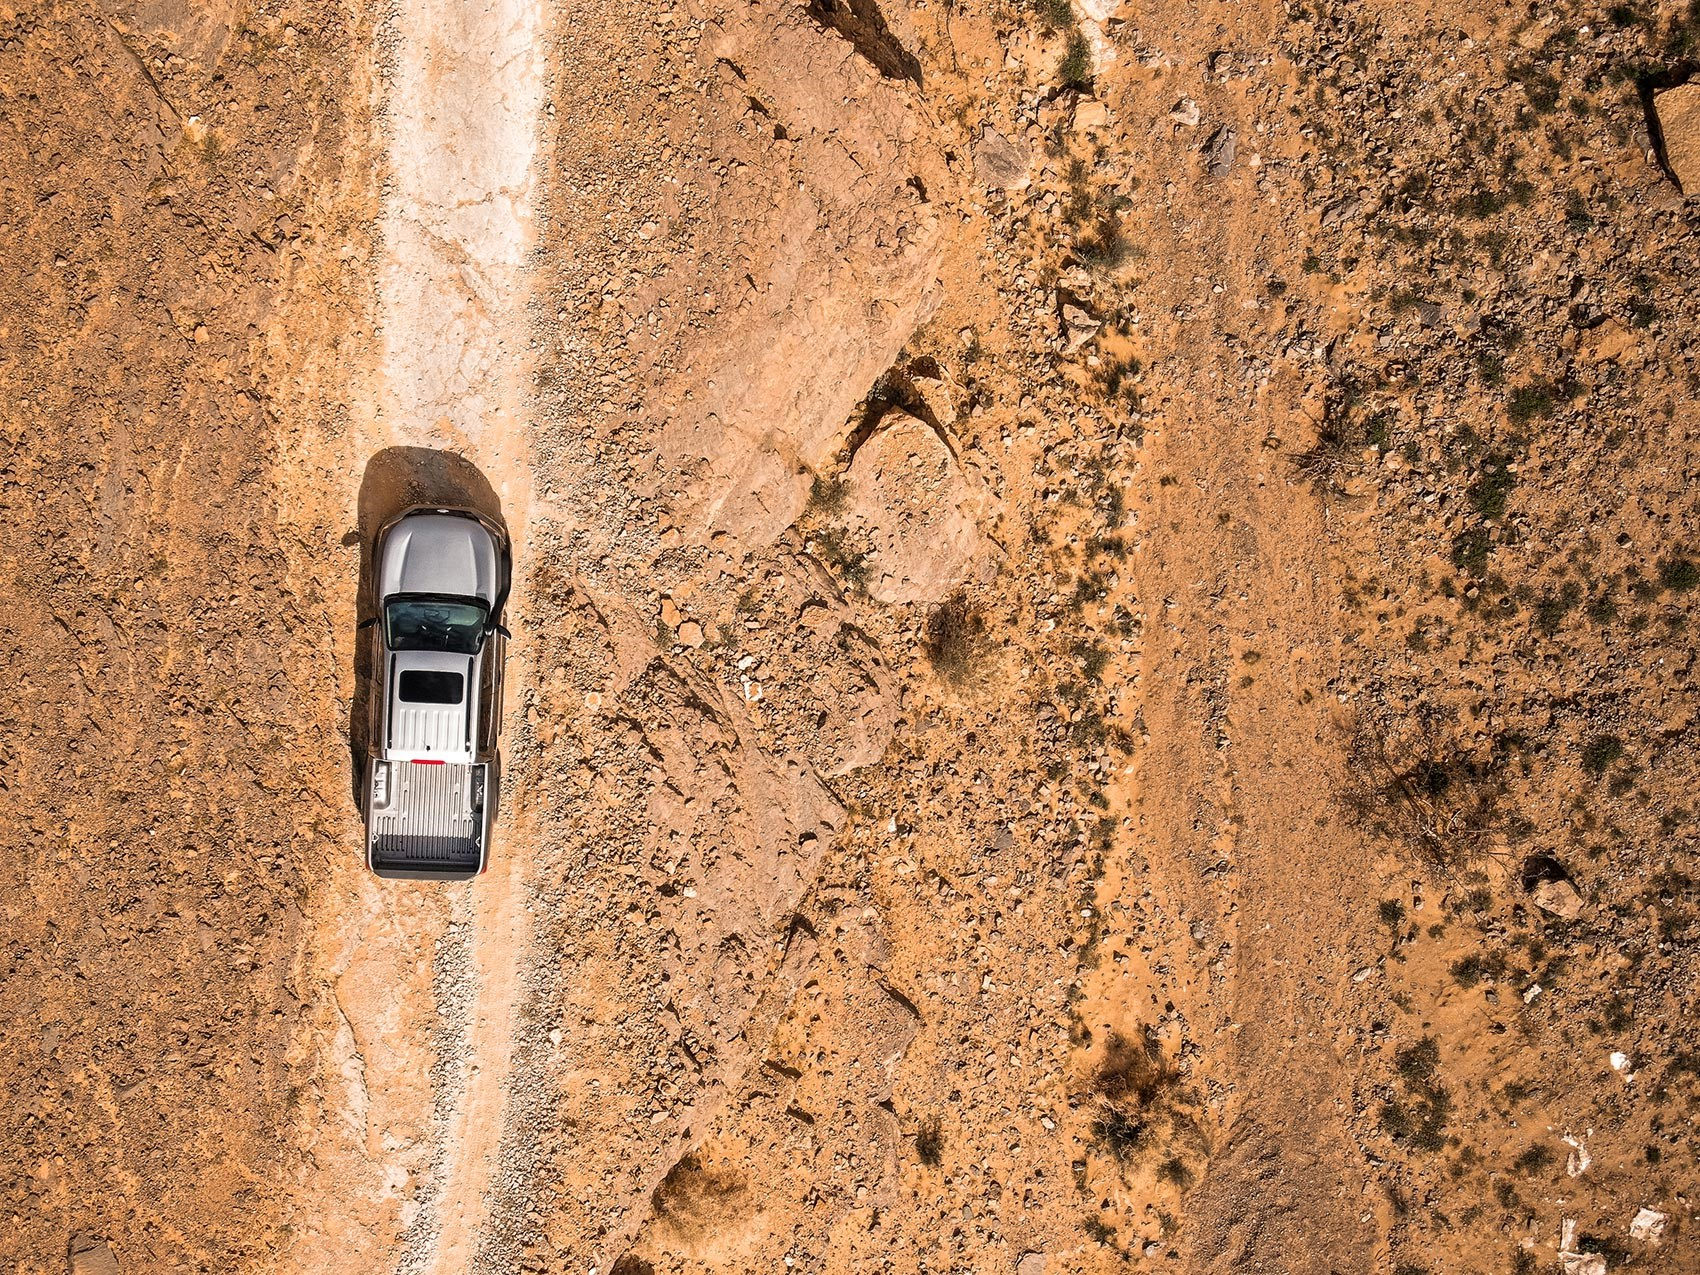 Nissan Navara from above: bird's eye view from drone